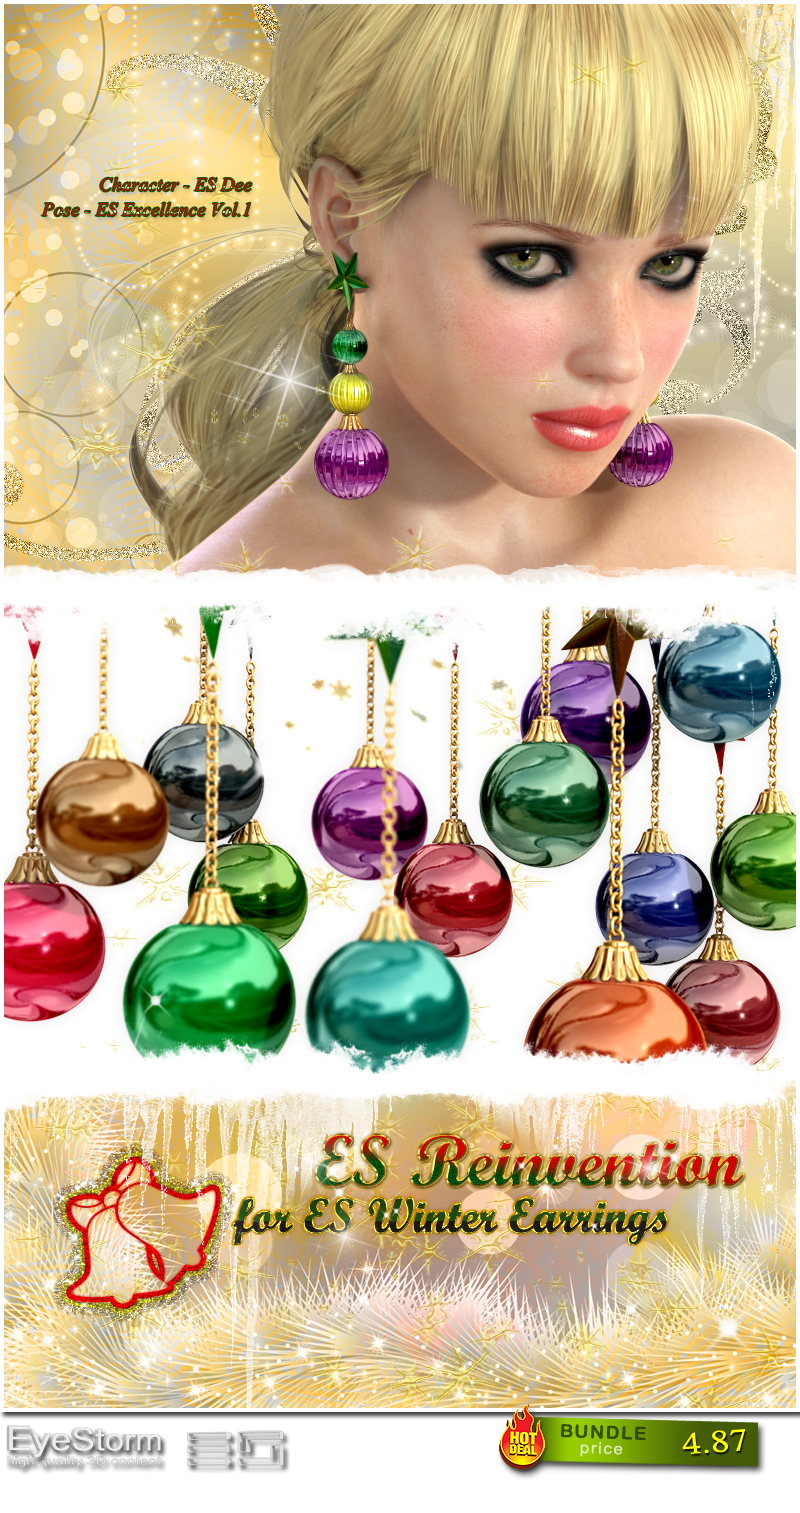 ES - REINVENTION - for ES Winter Earrings